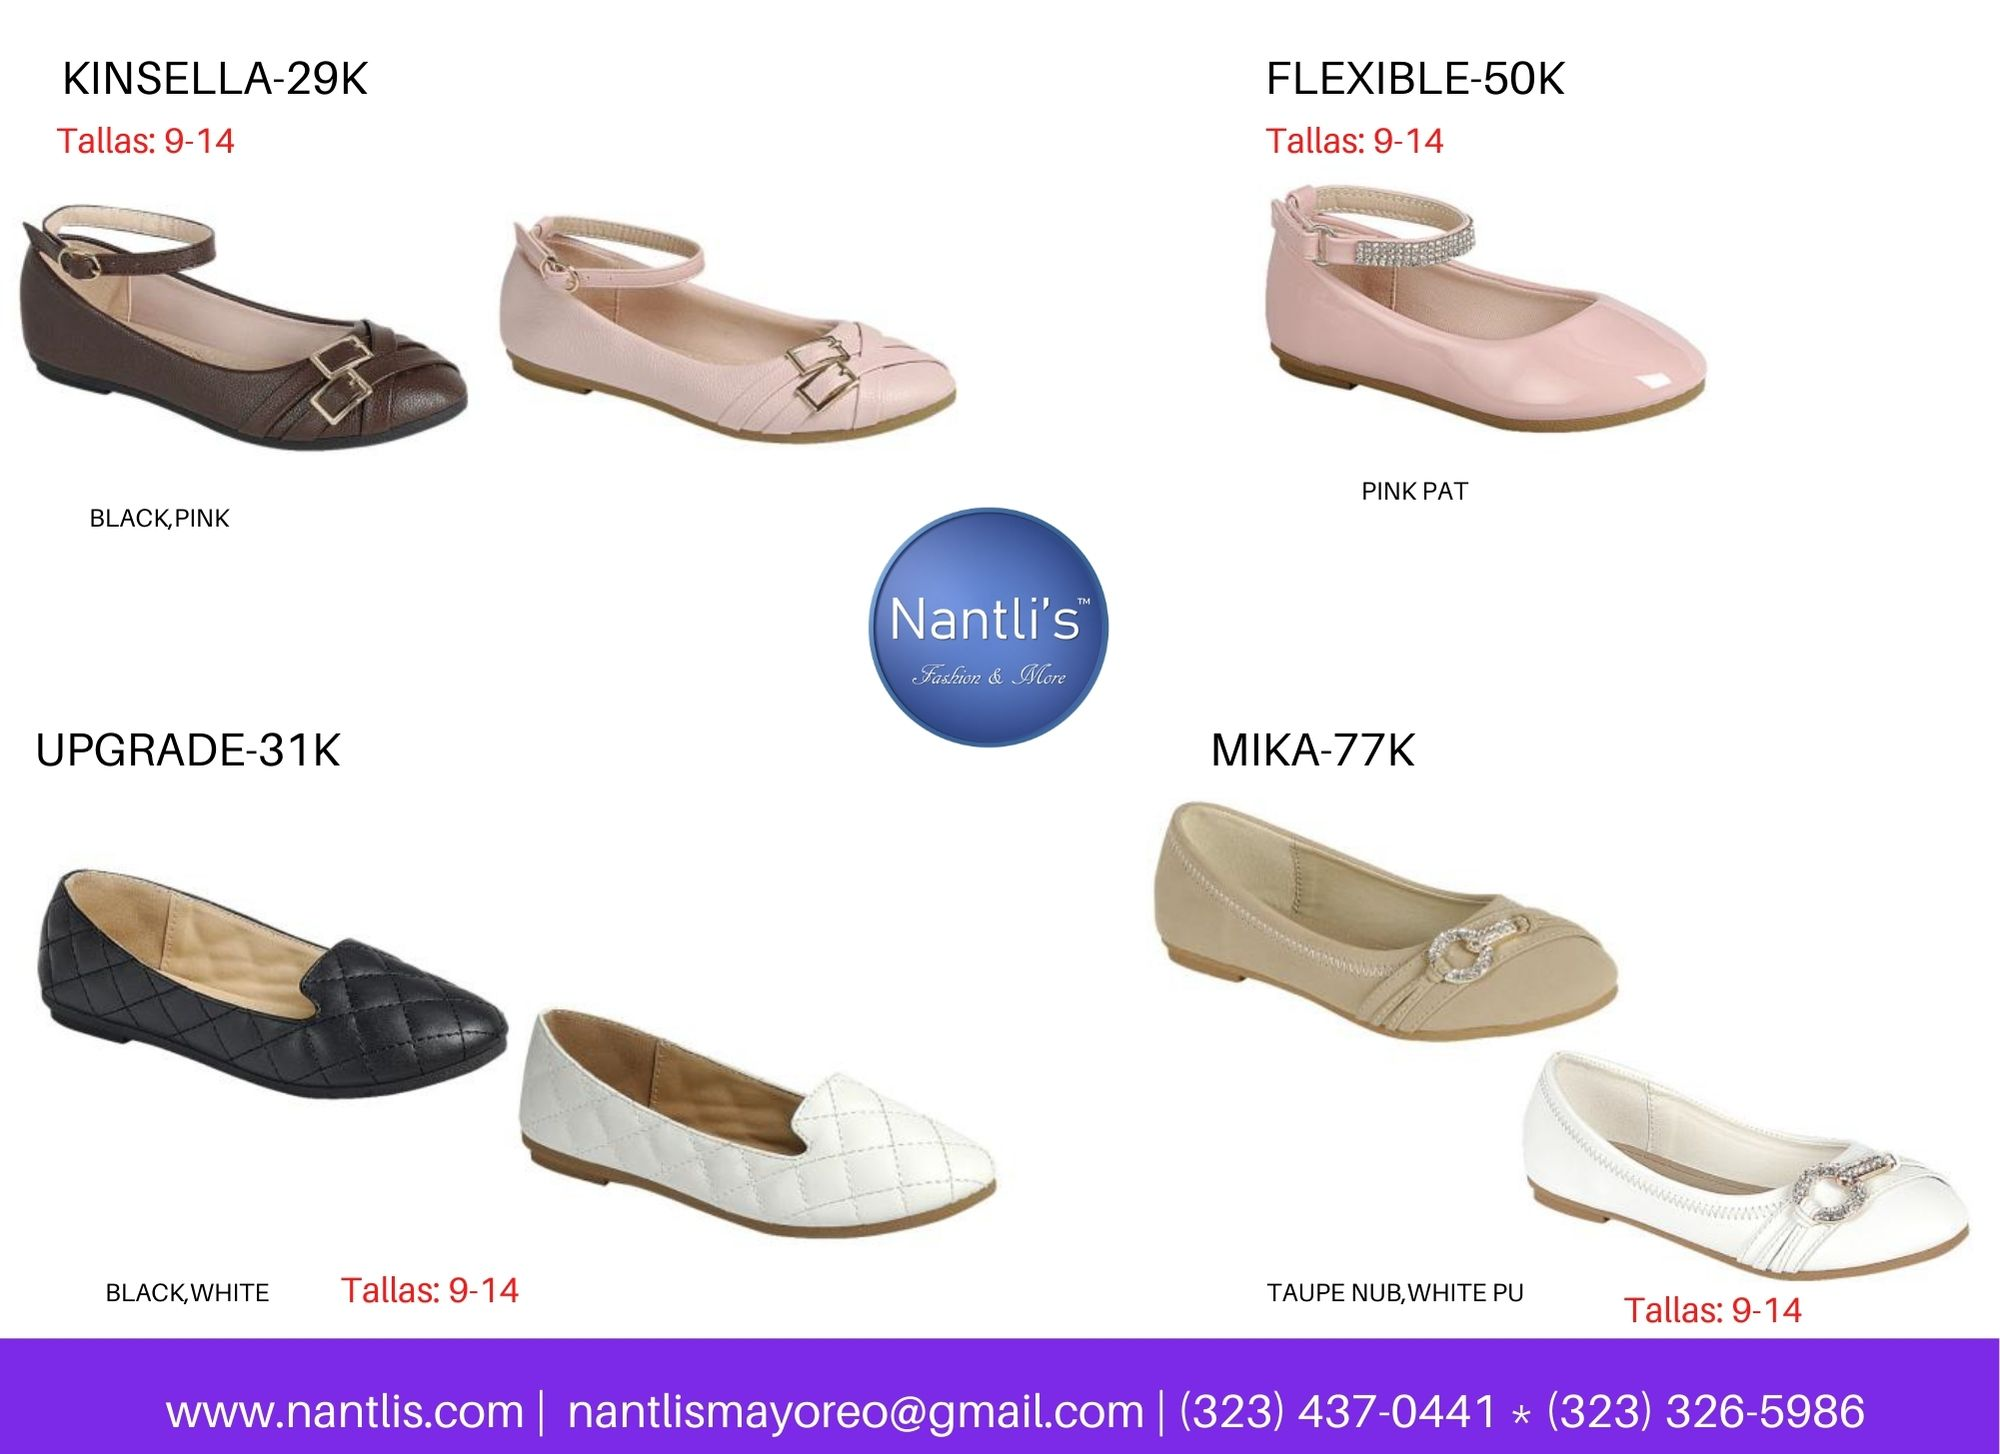 Catalogo Vol FL28 Tenis y Zapatos de ninas Mayoreo Wholesale girls shoes and tennis shoes for kids page 07